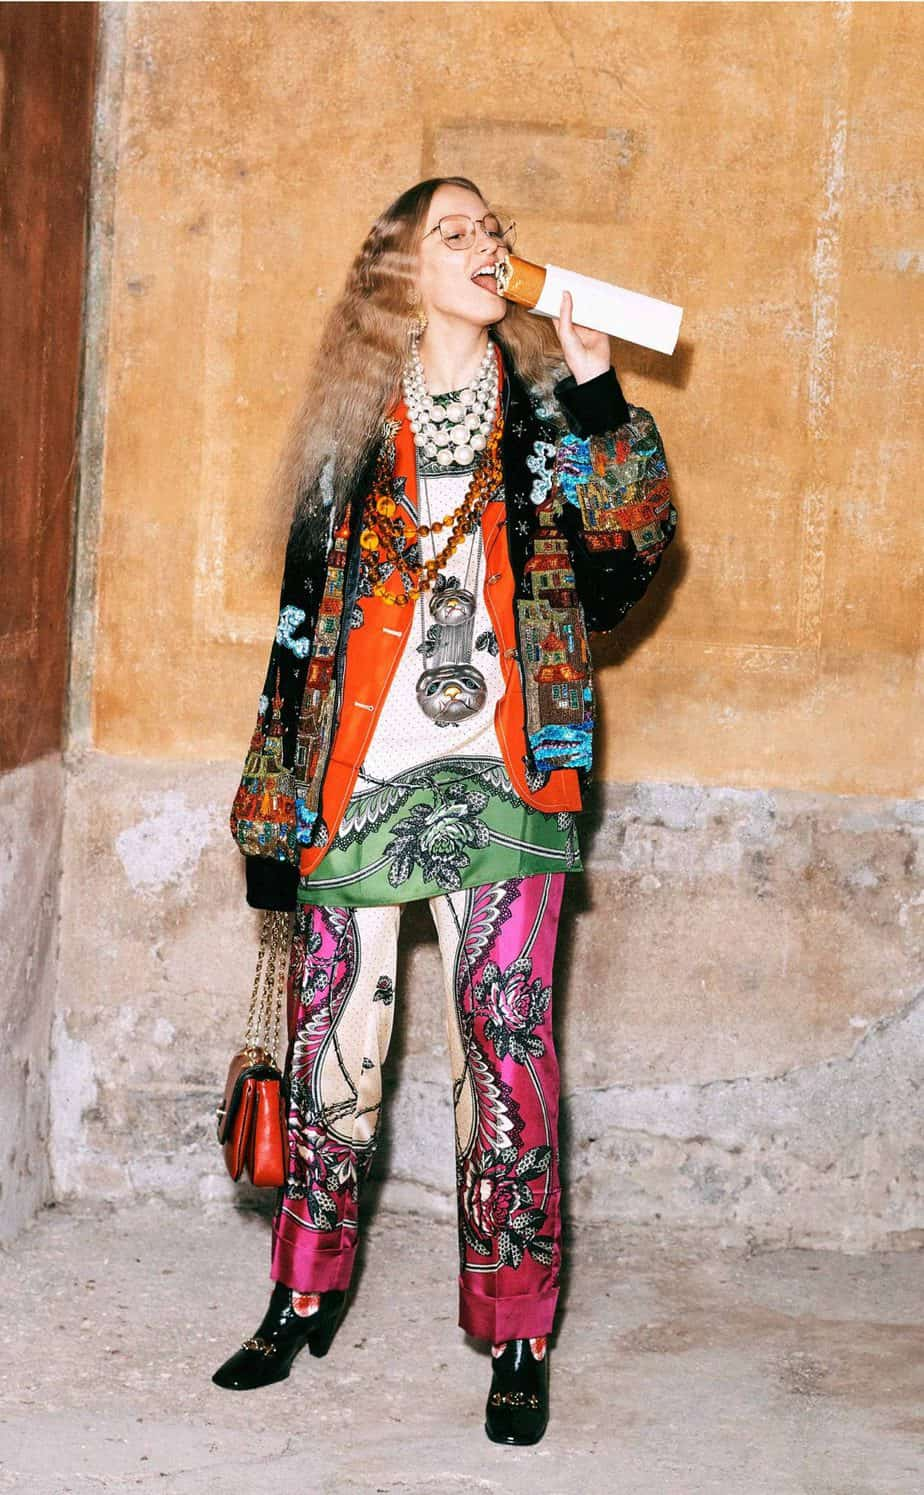 GUCCI, FALL 2019. WOMEN'S FASHION, Photographer Harmony Korine, Art Director, Christopher Simmonds - 55